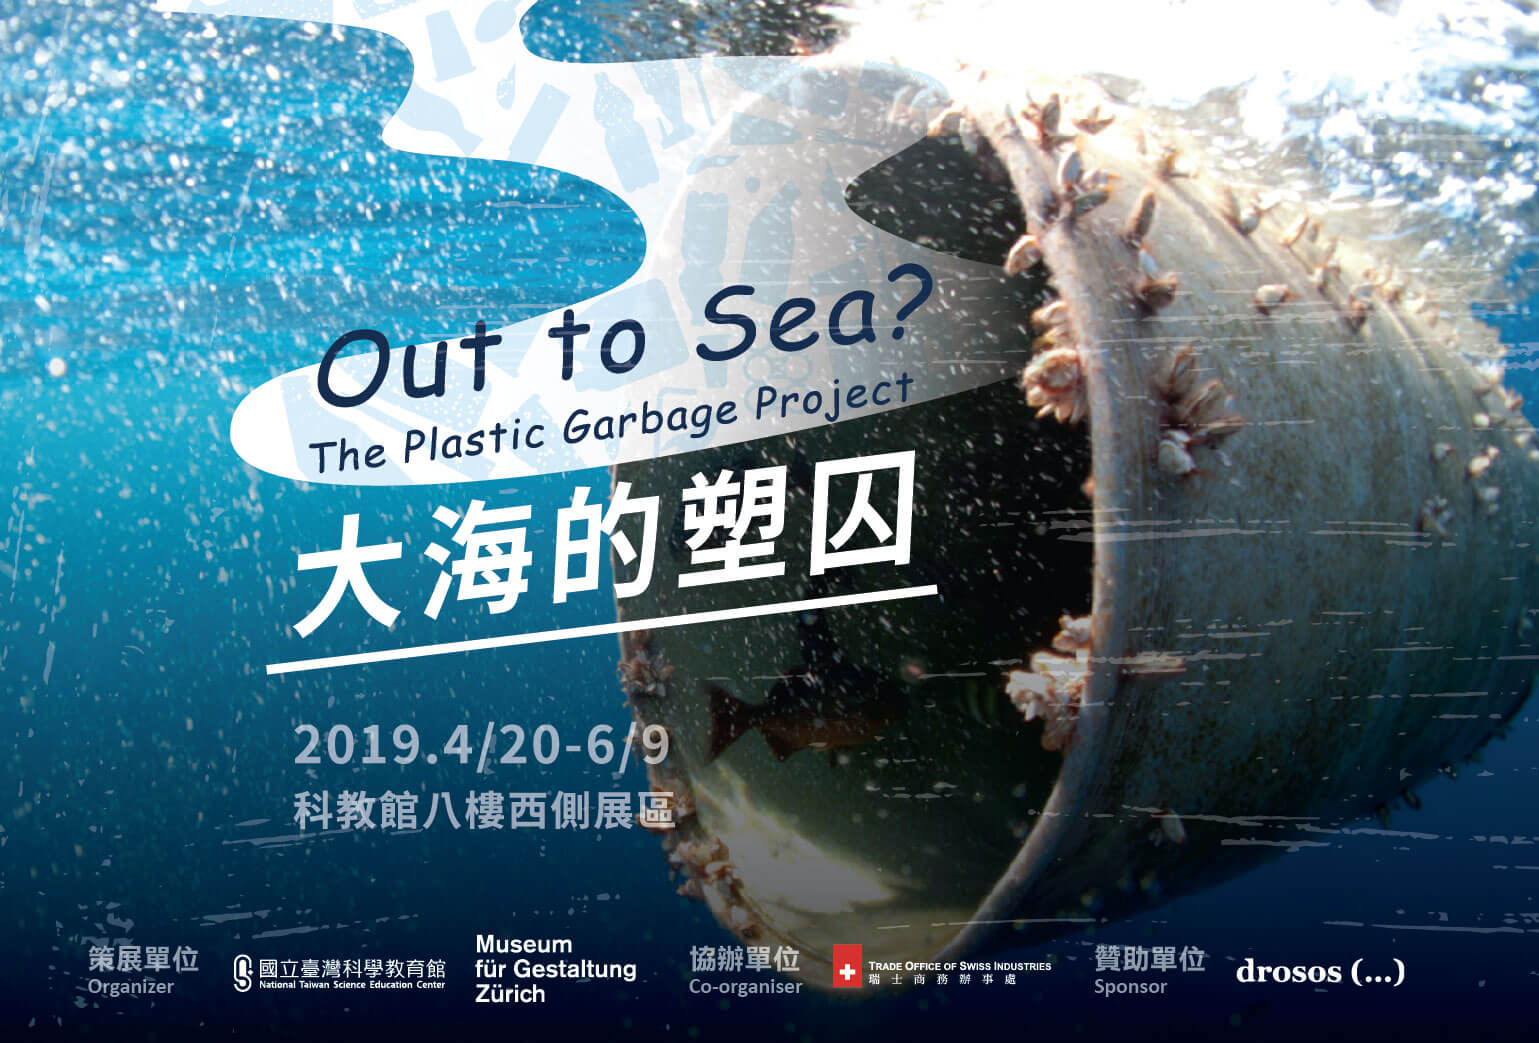 「大海的塑囚-Out to Sea? The Plastic Garbage Project」將於4/20展出